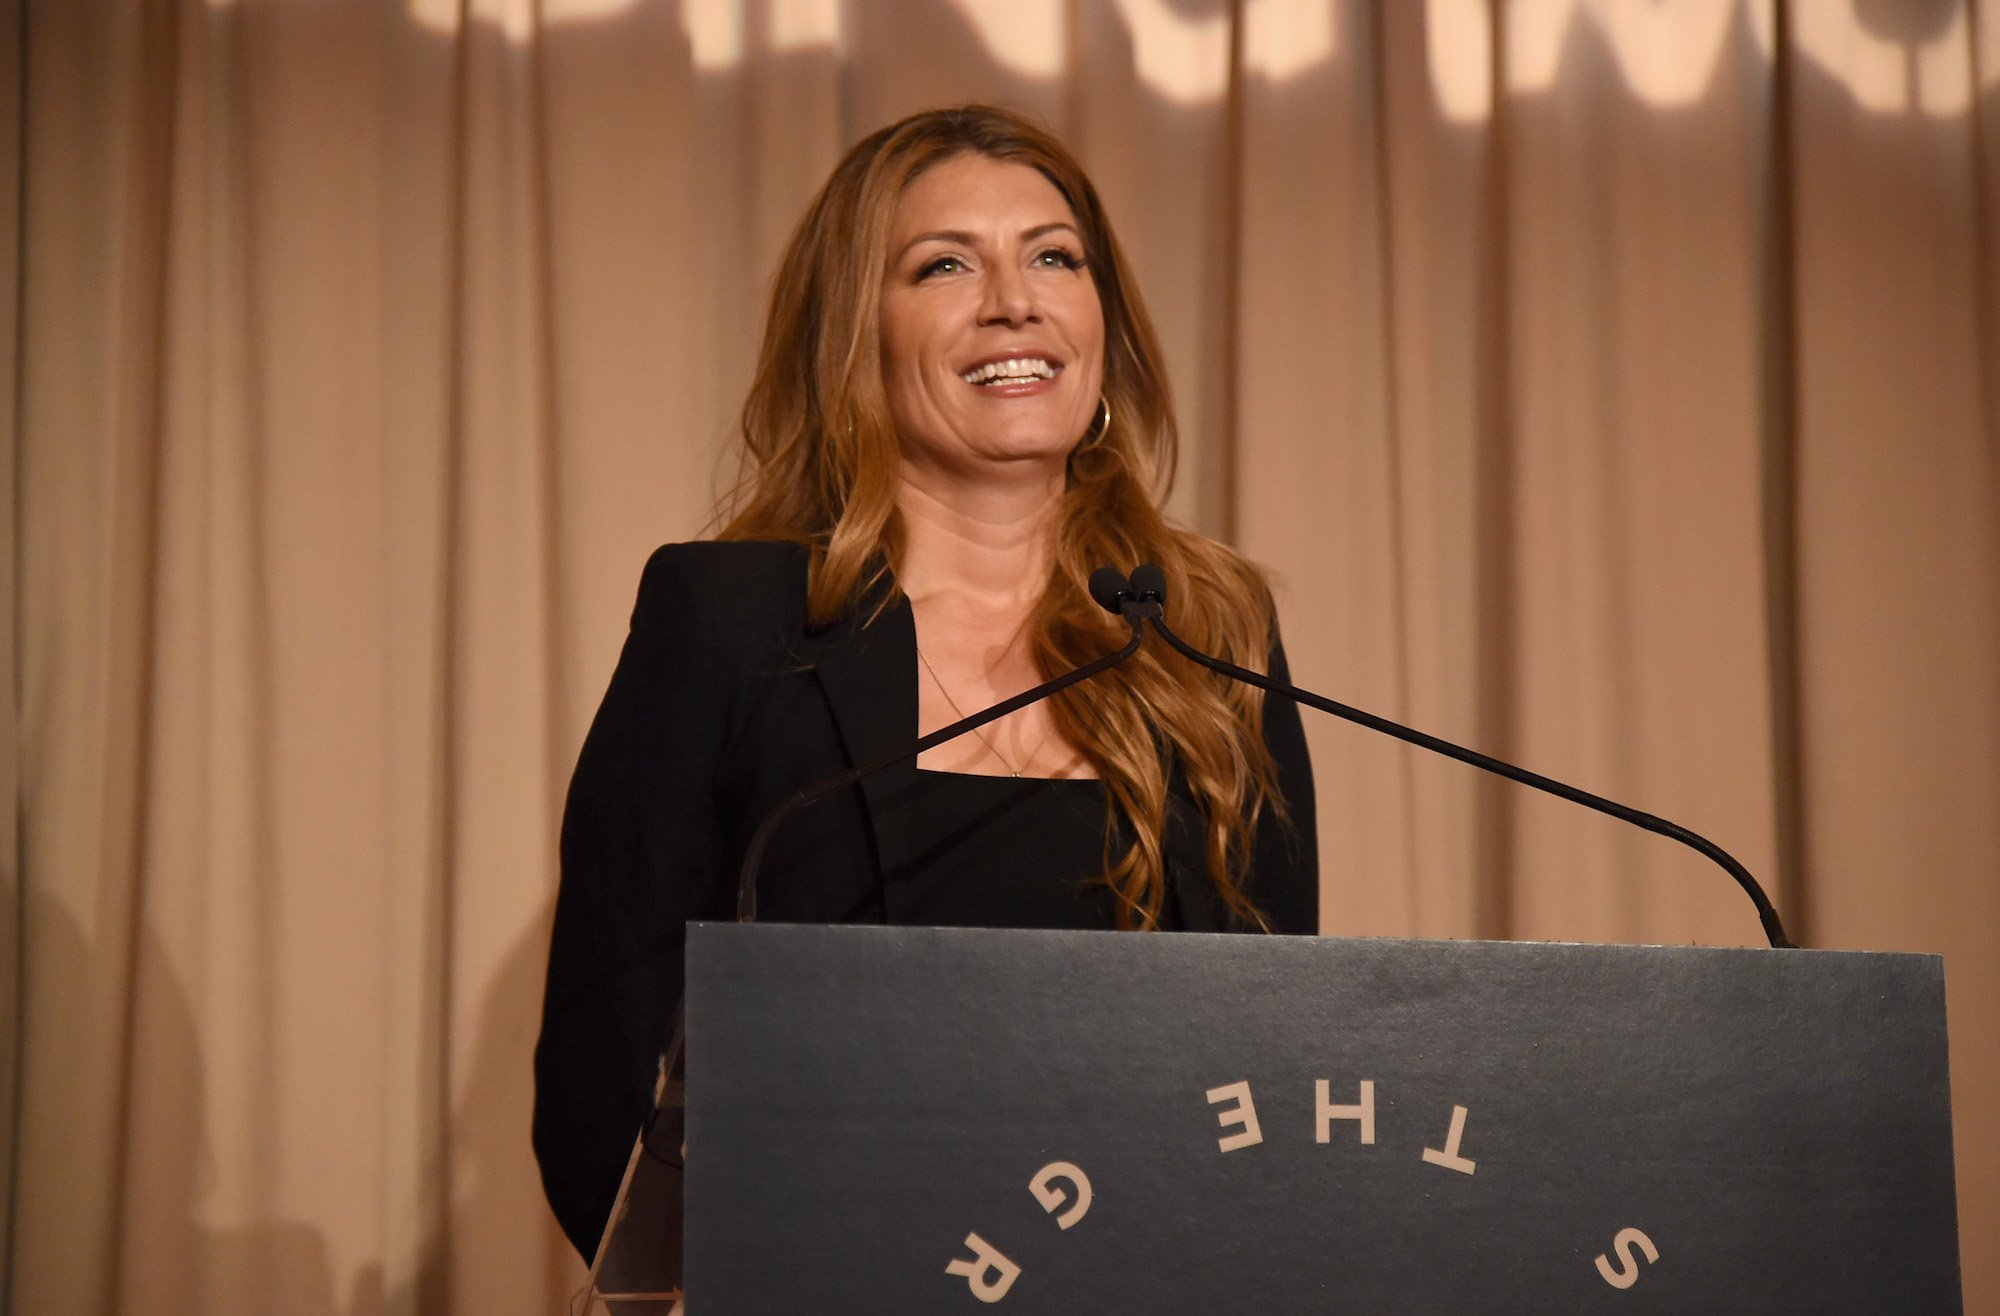 Genevieve Gorder Net Worth: Everything You Want to Know About Her Interior Design Career